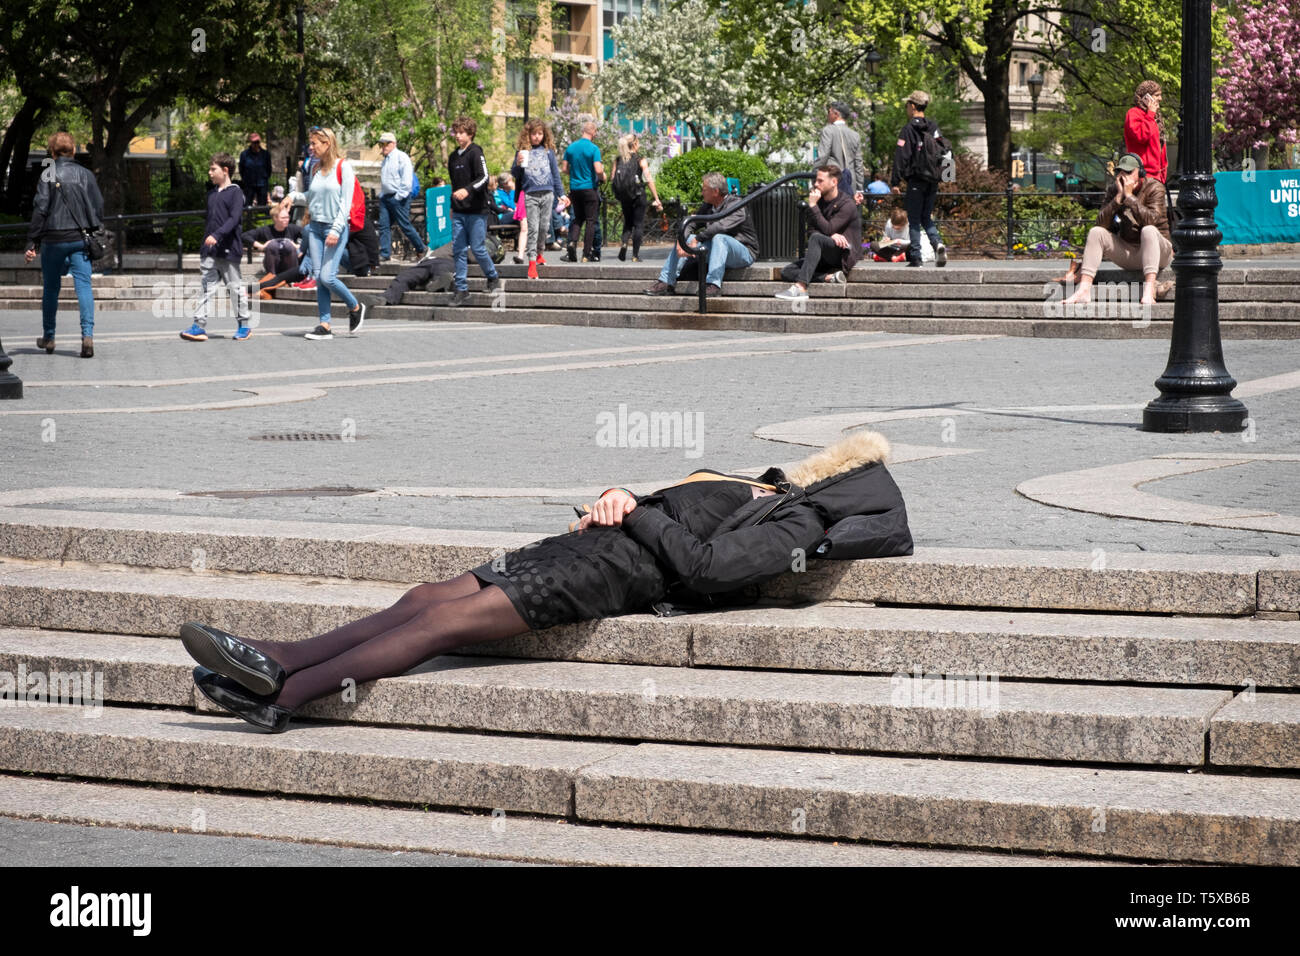 An anonymous well dressed woman in an overcoat sleeping on the steps on Union Square PArk in Lower Manhattan, New York City. - Stock Image